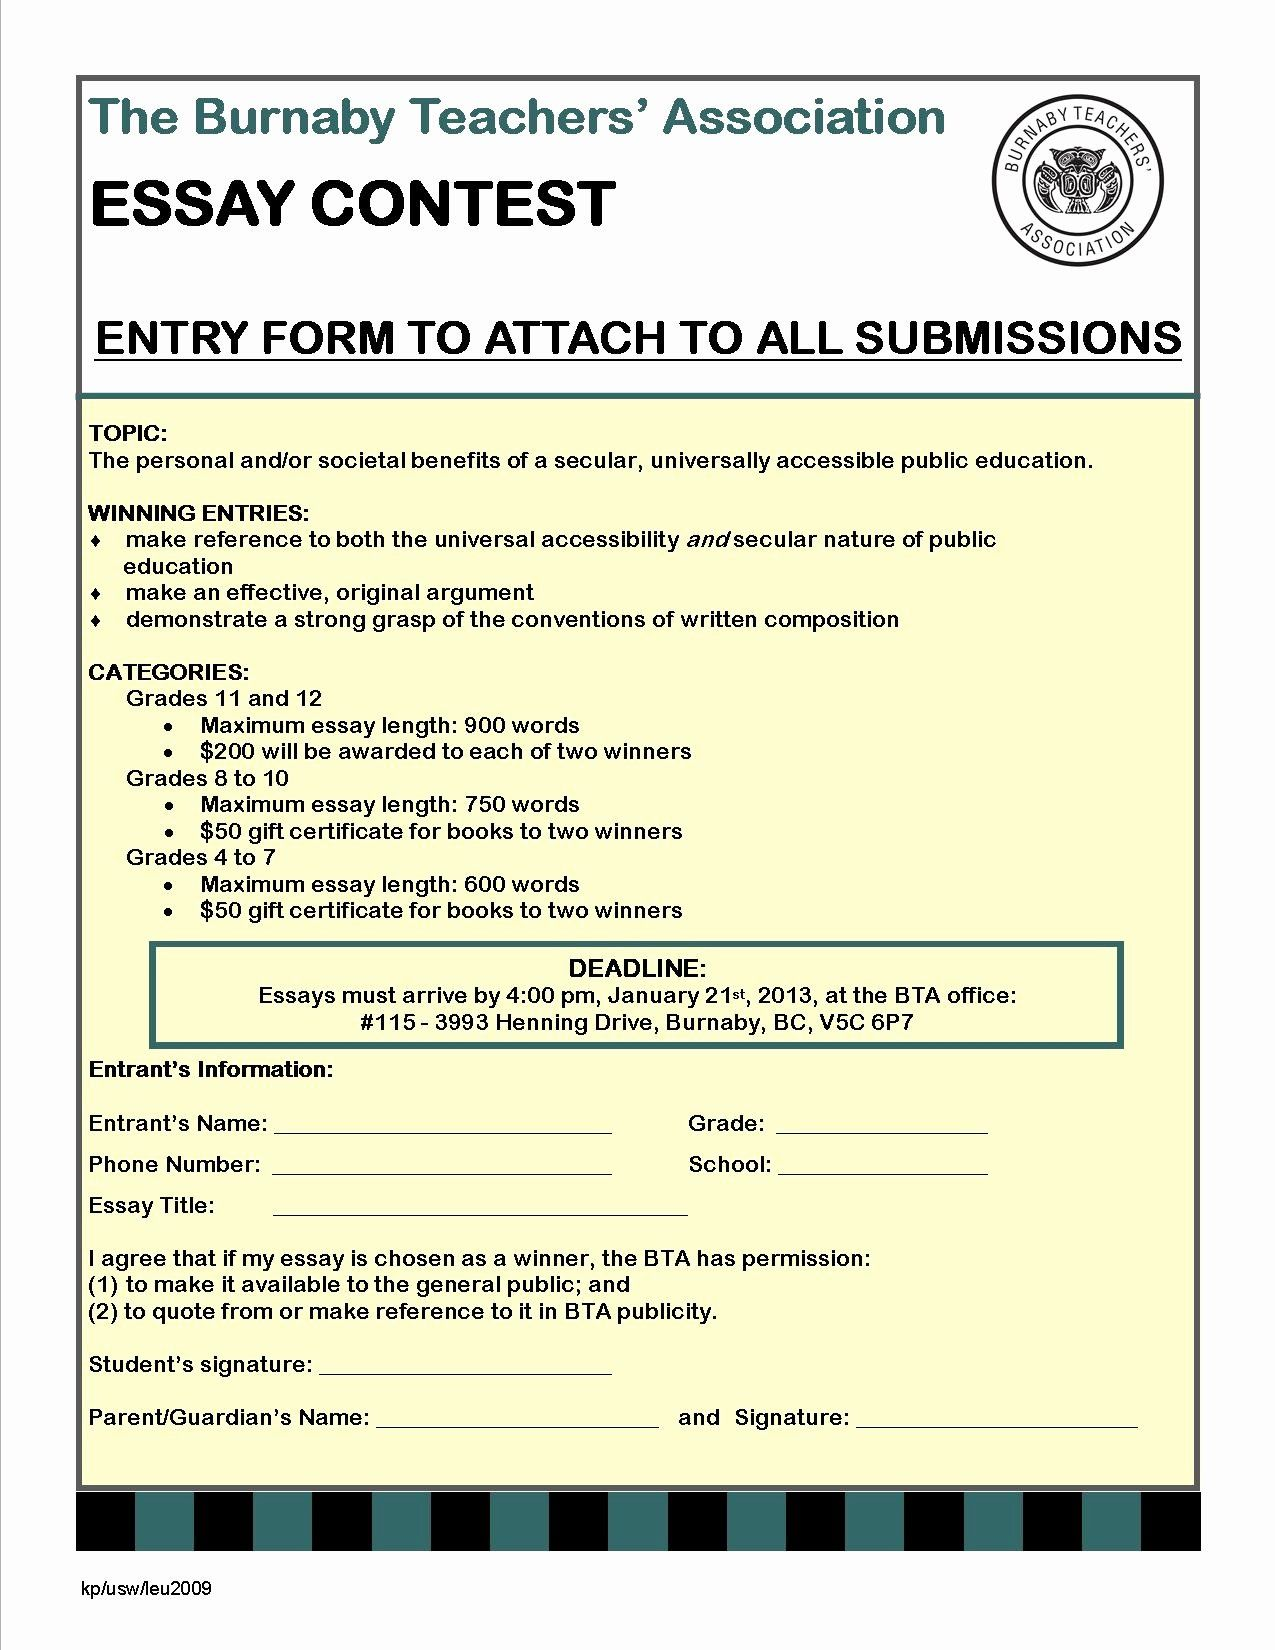 Contest Entry Form Template New Free Essay Contest Rules Template Programs Essay Contests Business Template Templates